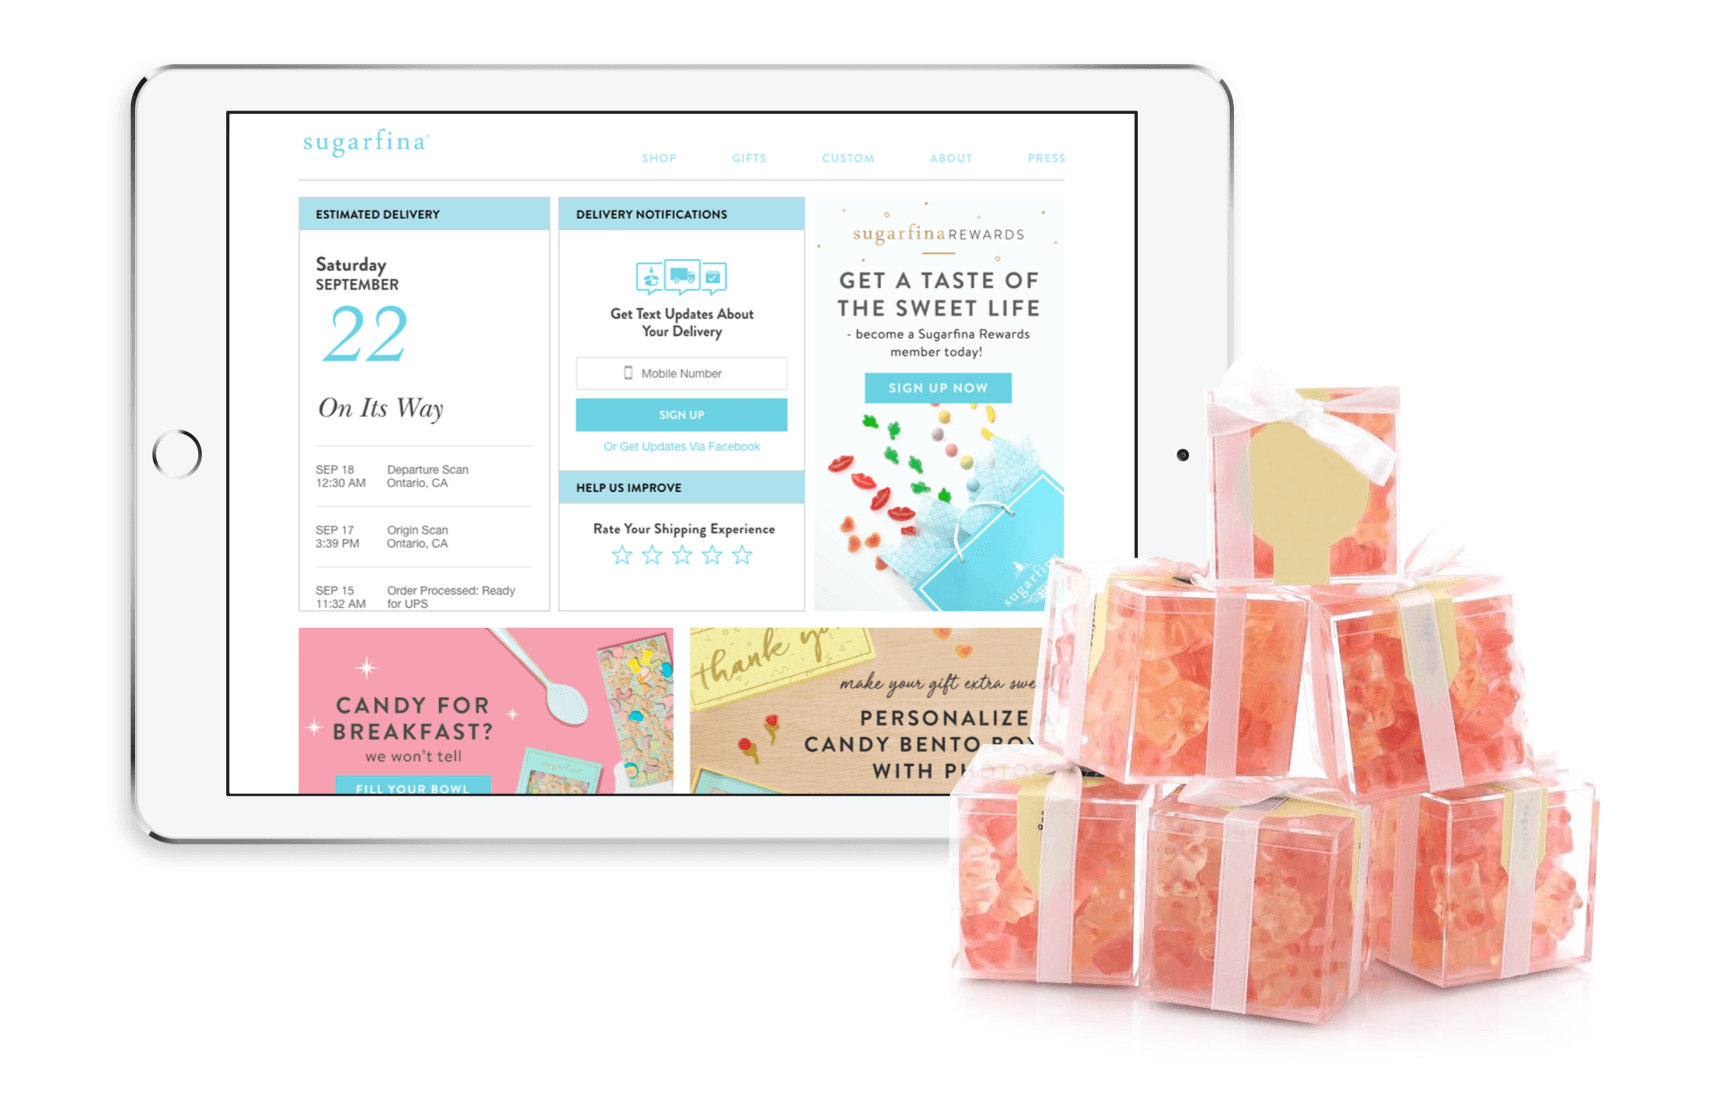 Sugarfina customer loyalty program